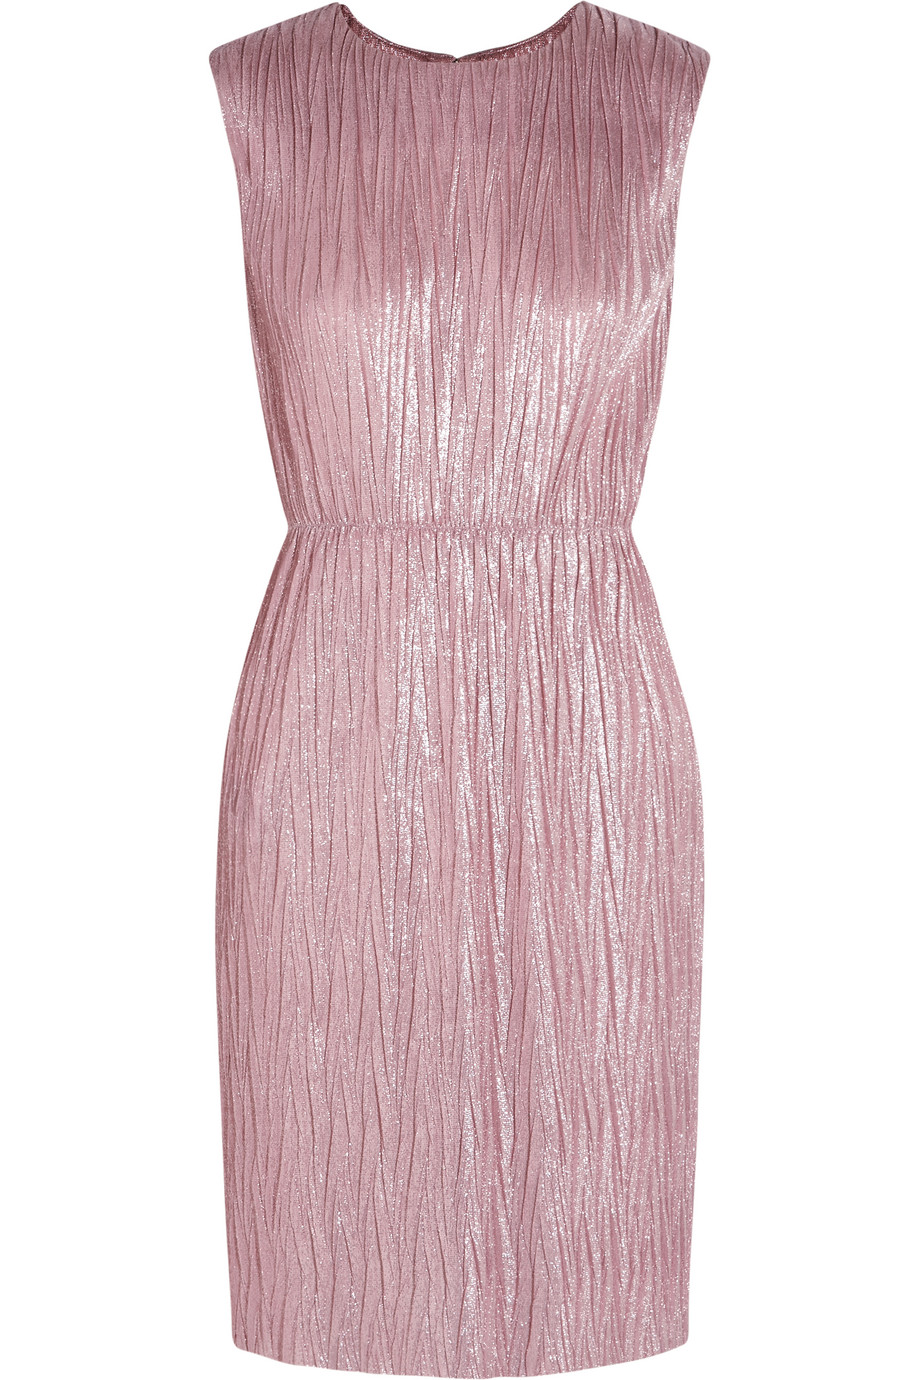 Gucci Plissé Lamé Mini Dress, Pink, Women's